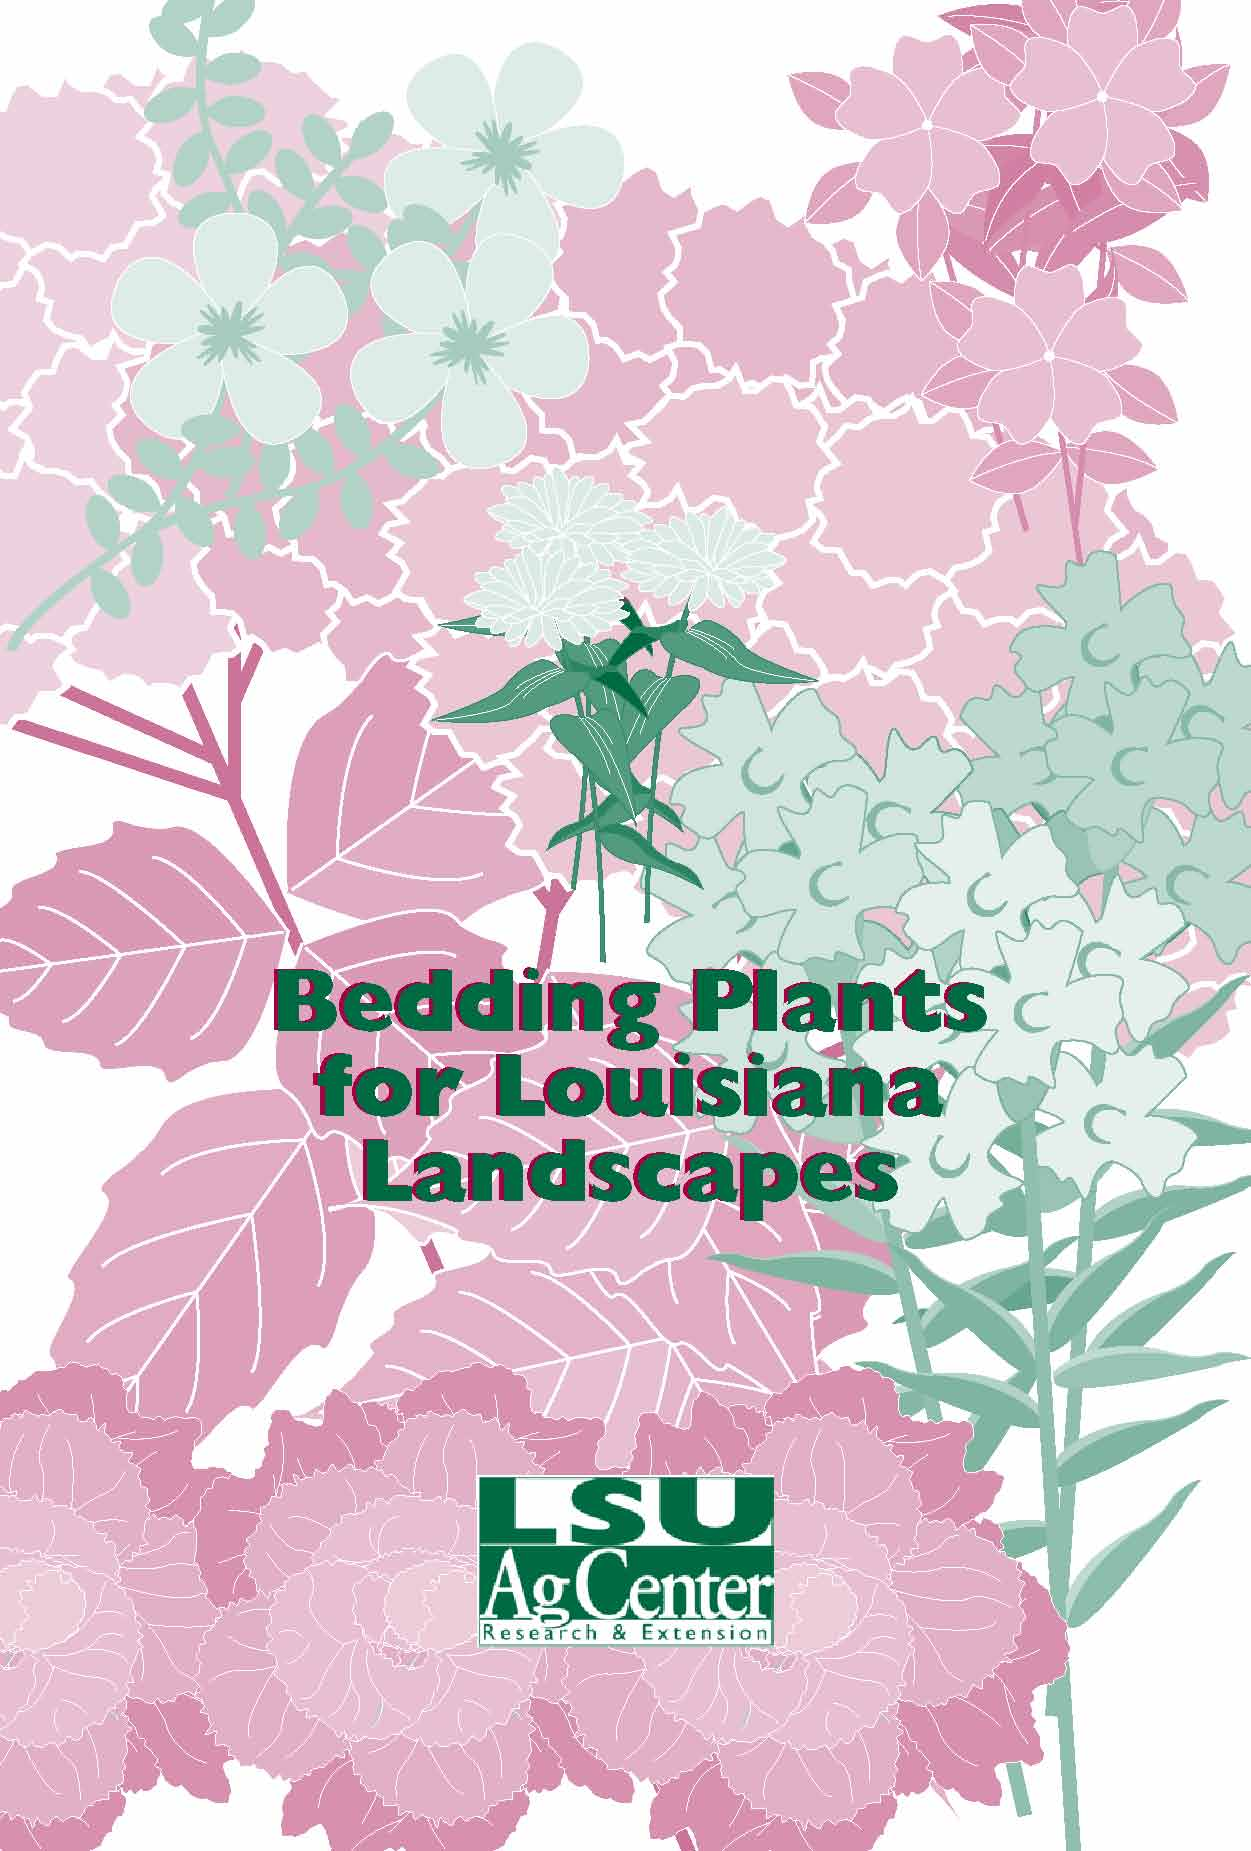 Bedding Plants for Louisiana Landscapes